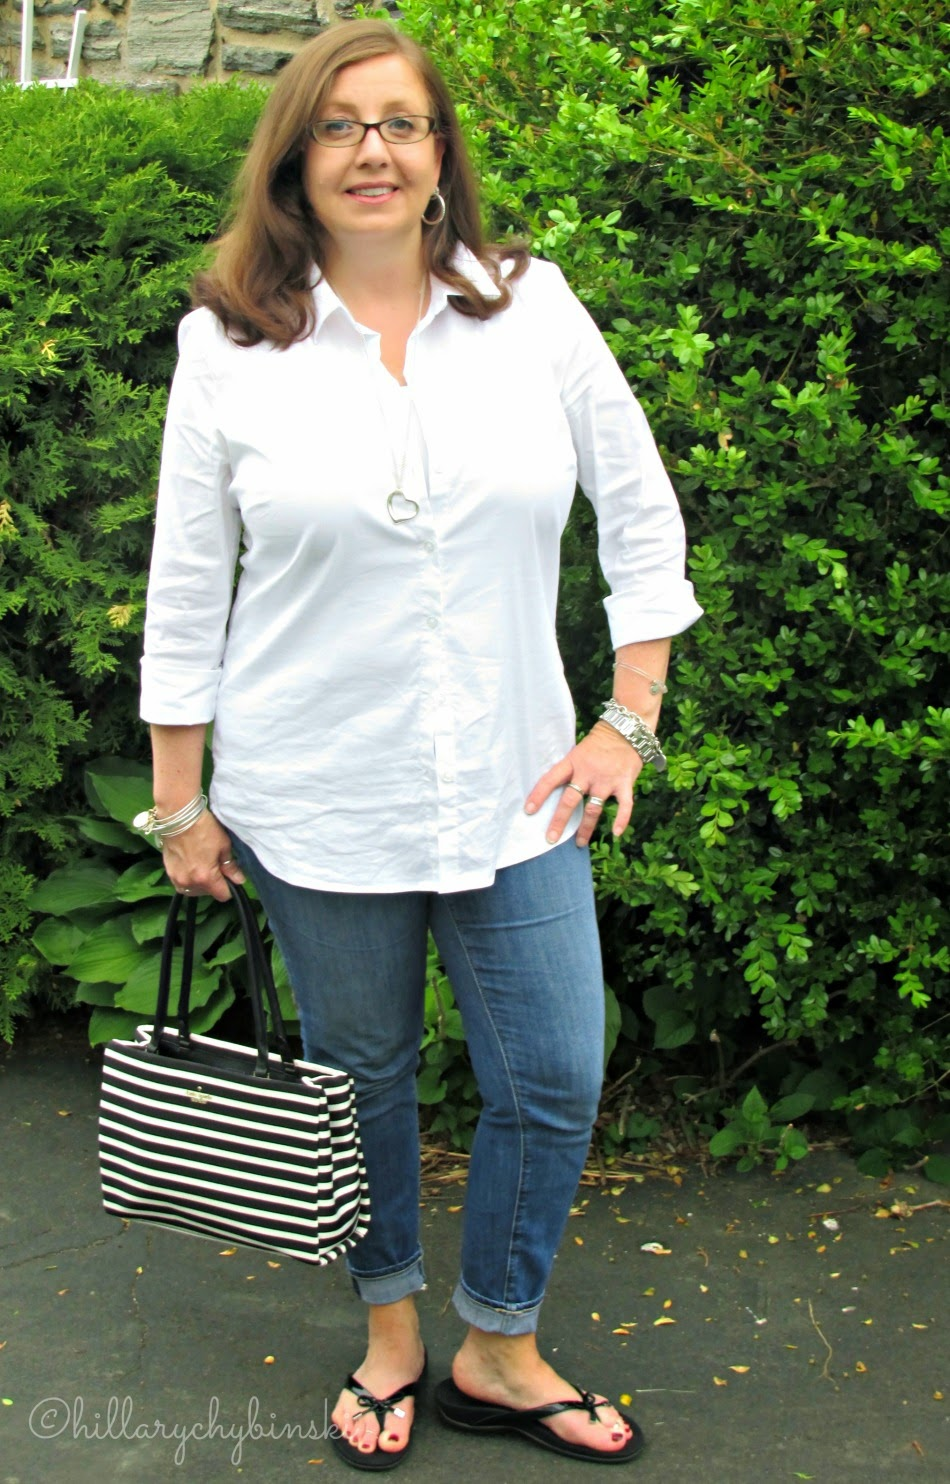 6a3f903ae38 White Shirt and Jeans Styled With Black and White Accessories